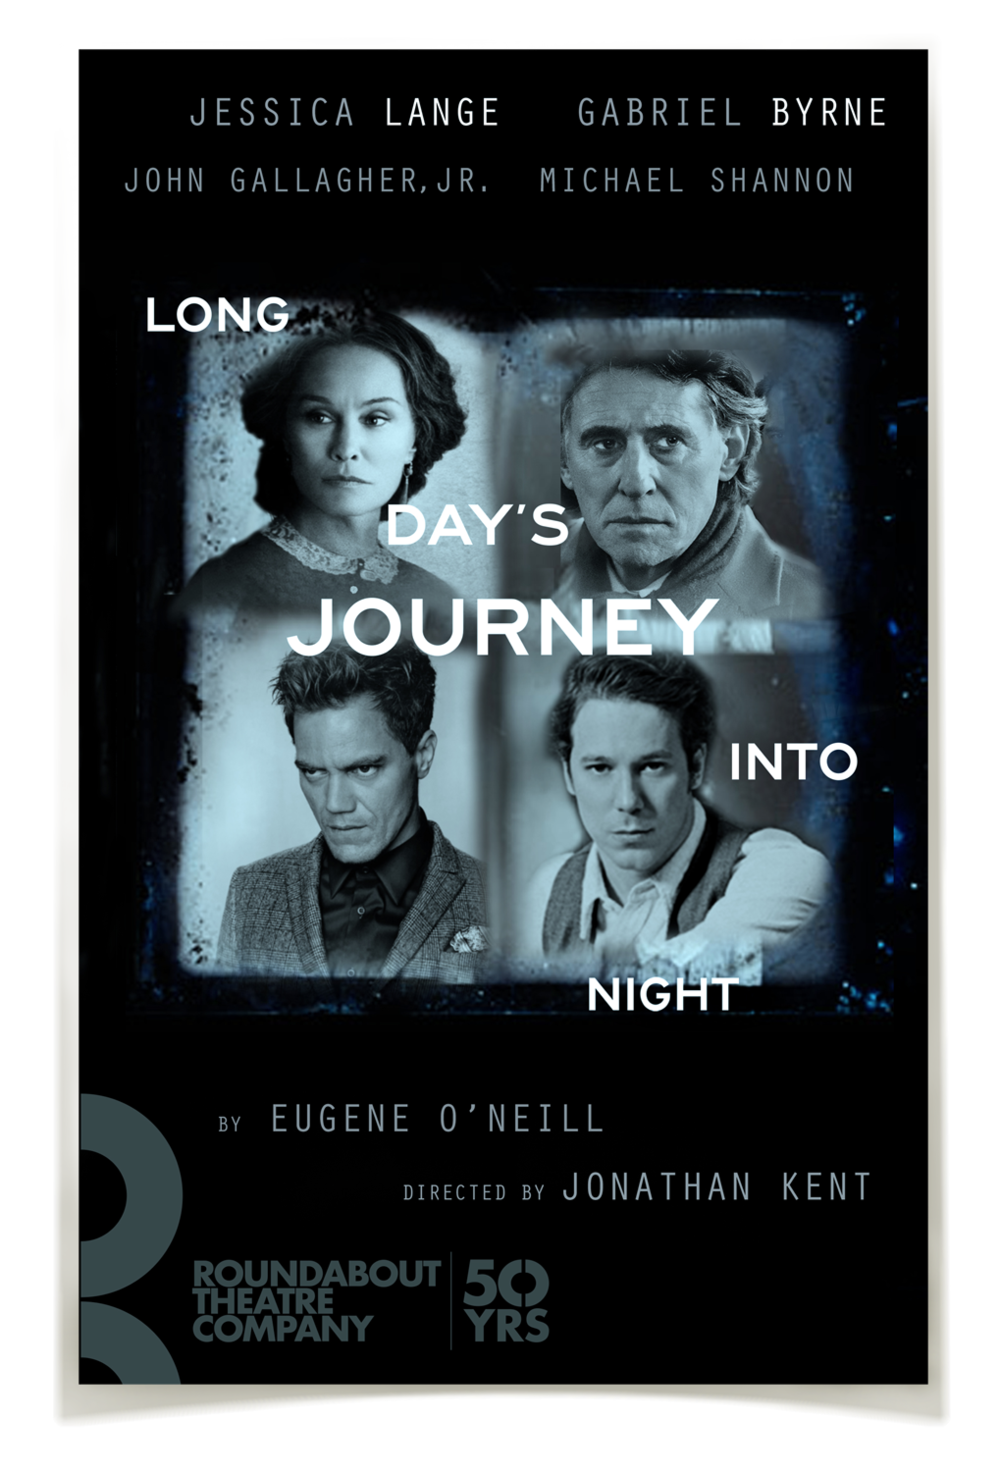 covell_design_long_days_journey_lange_2.png